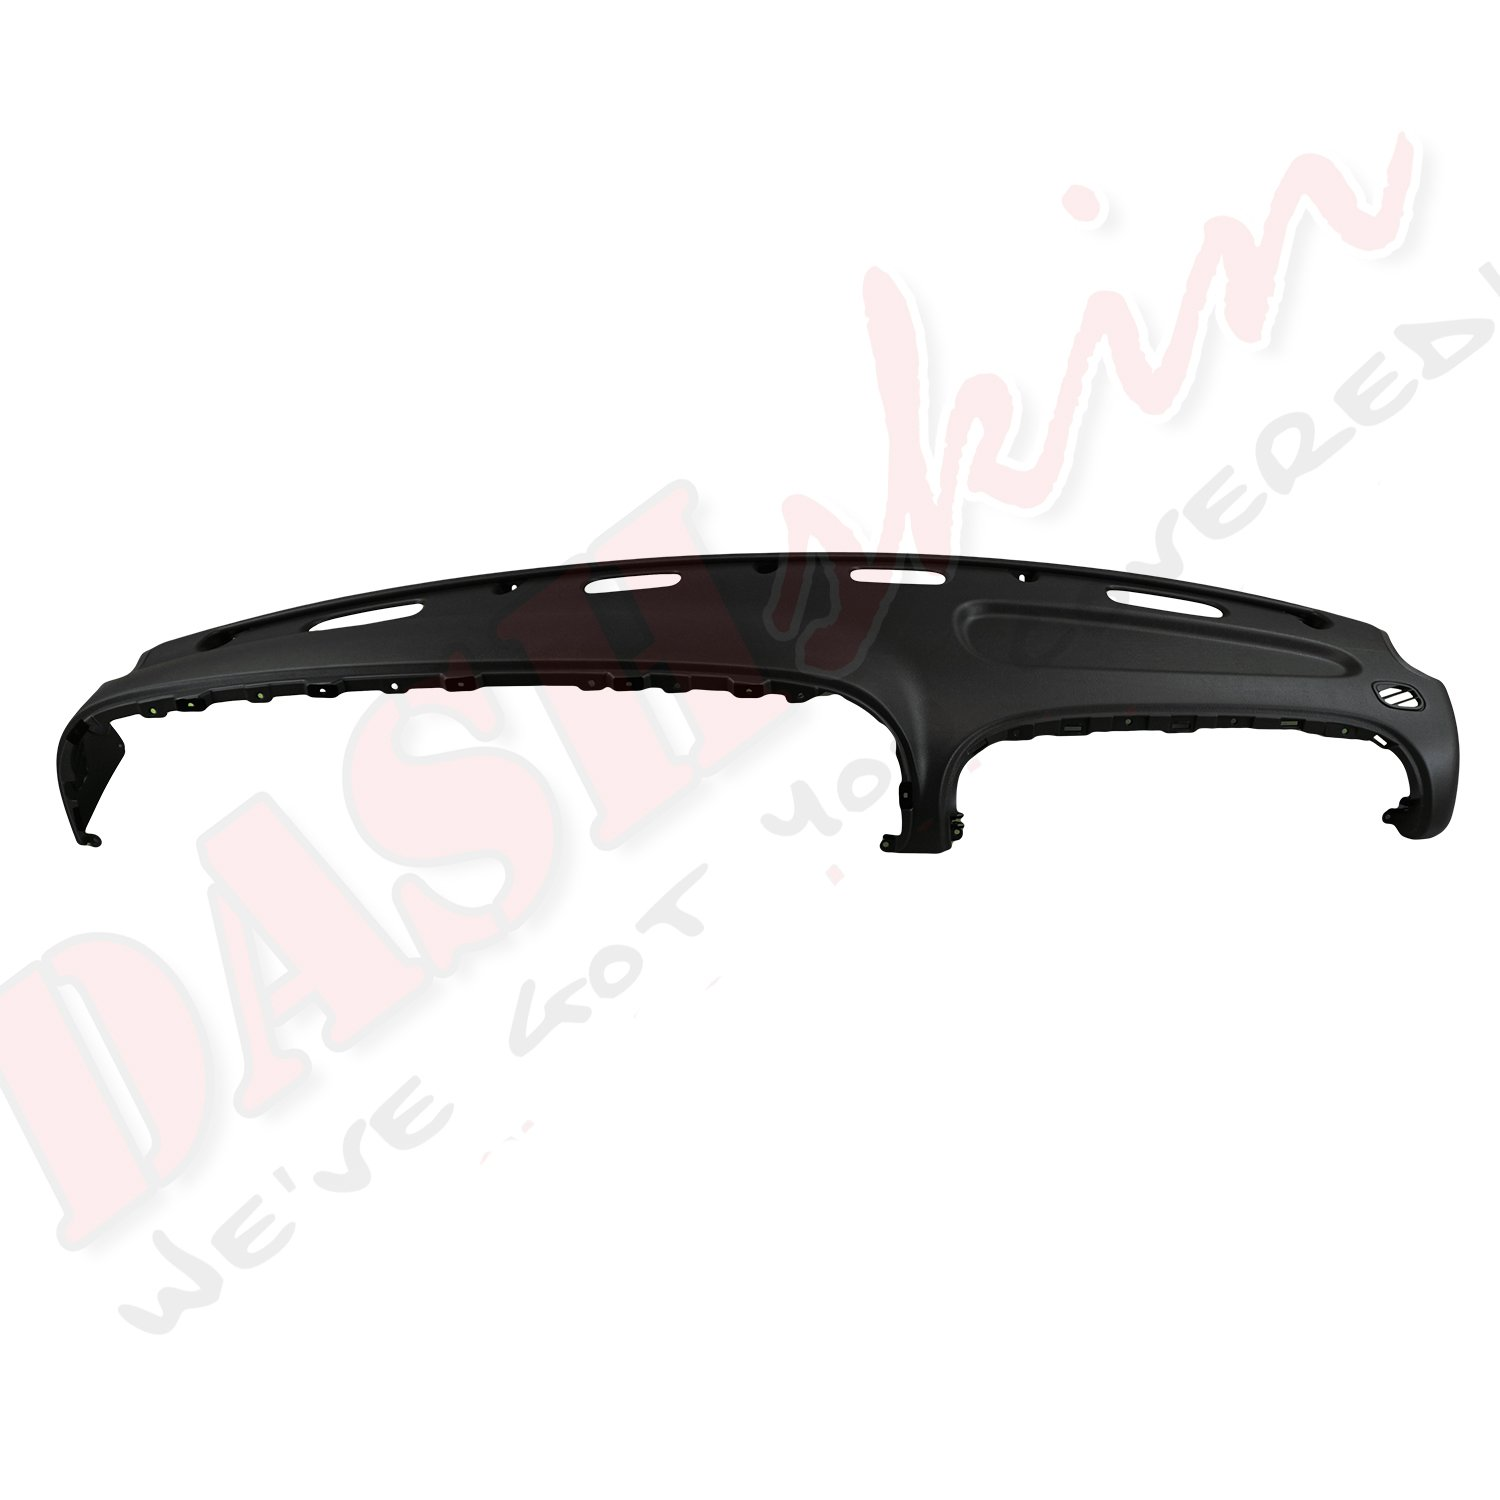 1998-2001 Dodge Ram Replacement Dashboard Assembly Dash Pad AGATE (Dark Grey)